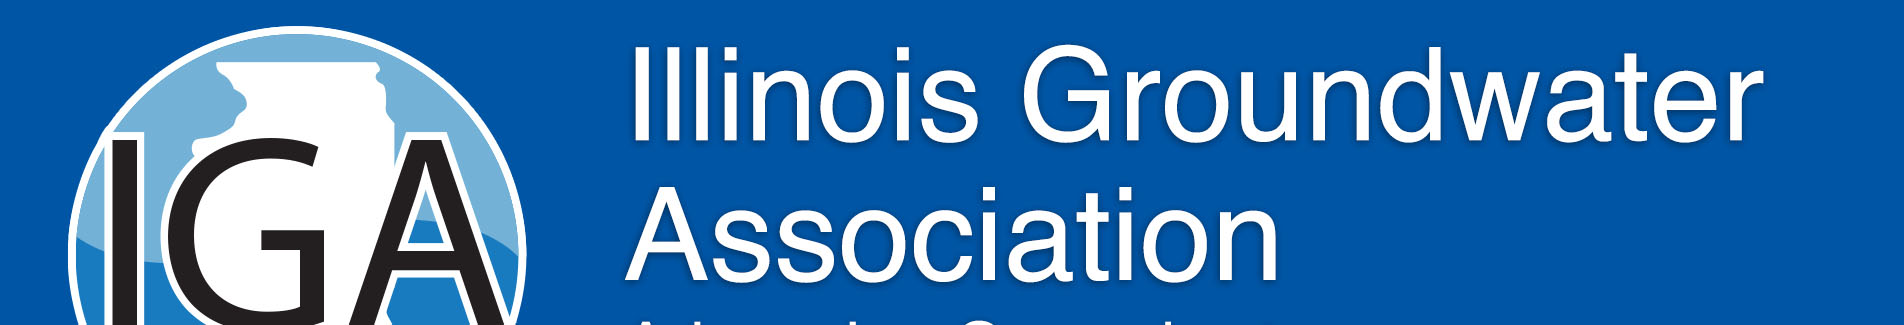 Illinois Groundwater Association